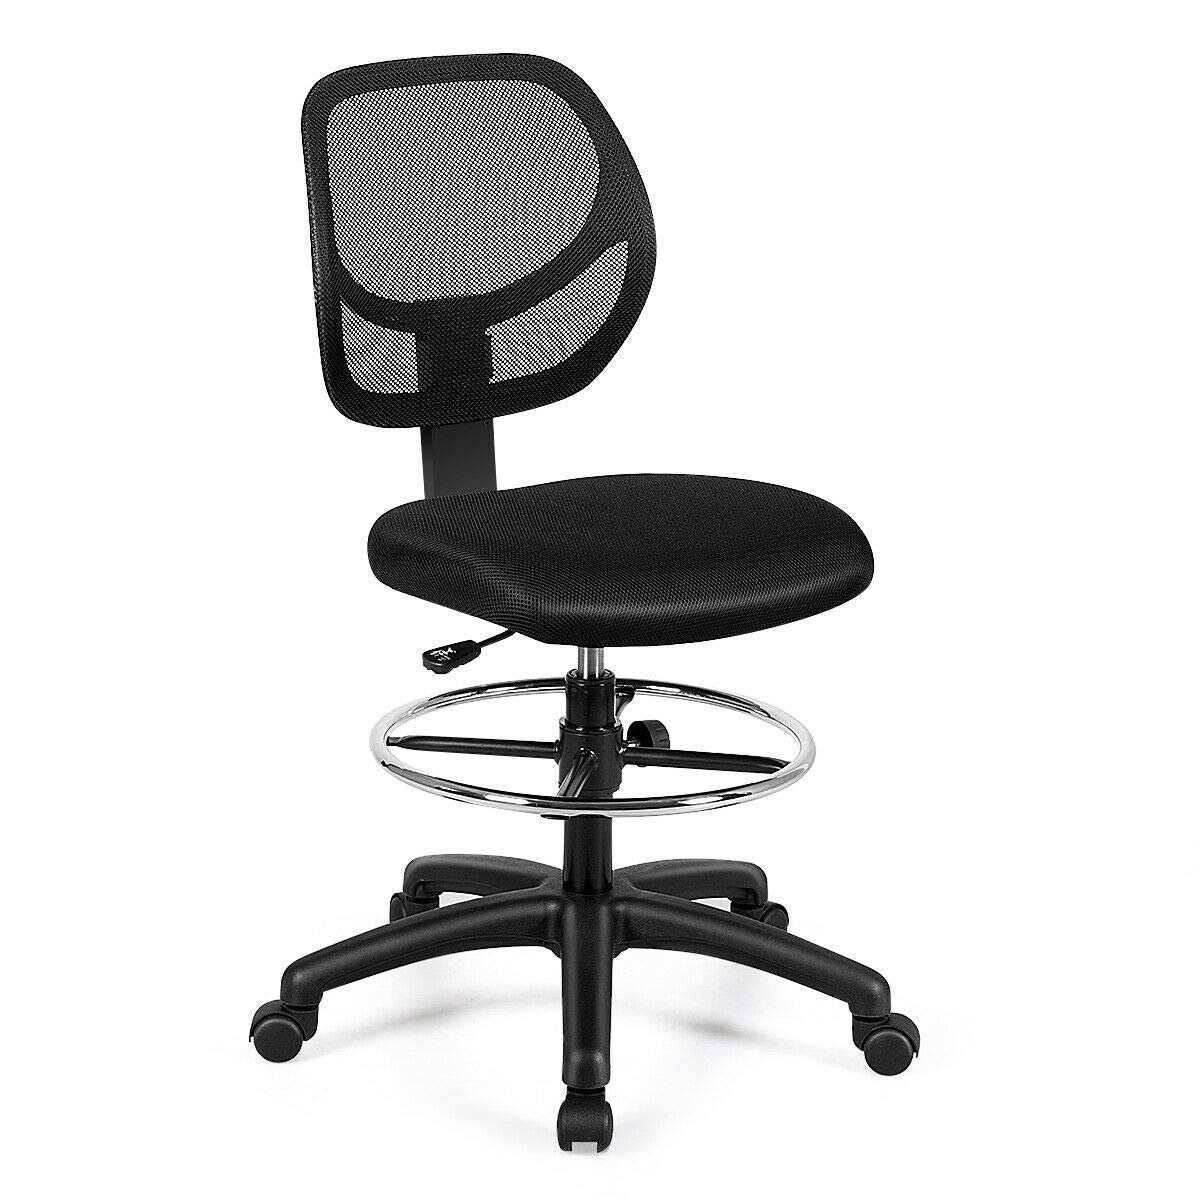 Giantex Mesh Drafting Chair, Mid Back Adjustable Height Chair for Standing Desk, Ergonomic Computer Swivel Chair with Footrest Ring, Home Sturdy Office Furniture, Black by Giantex